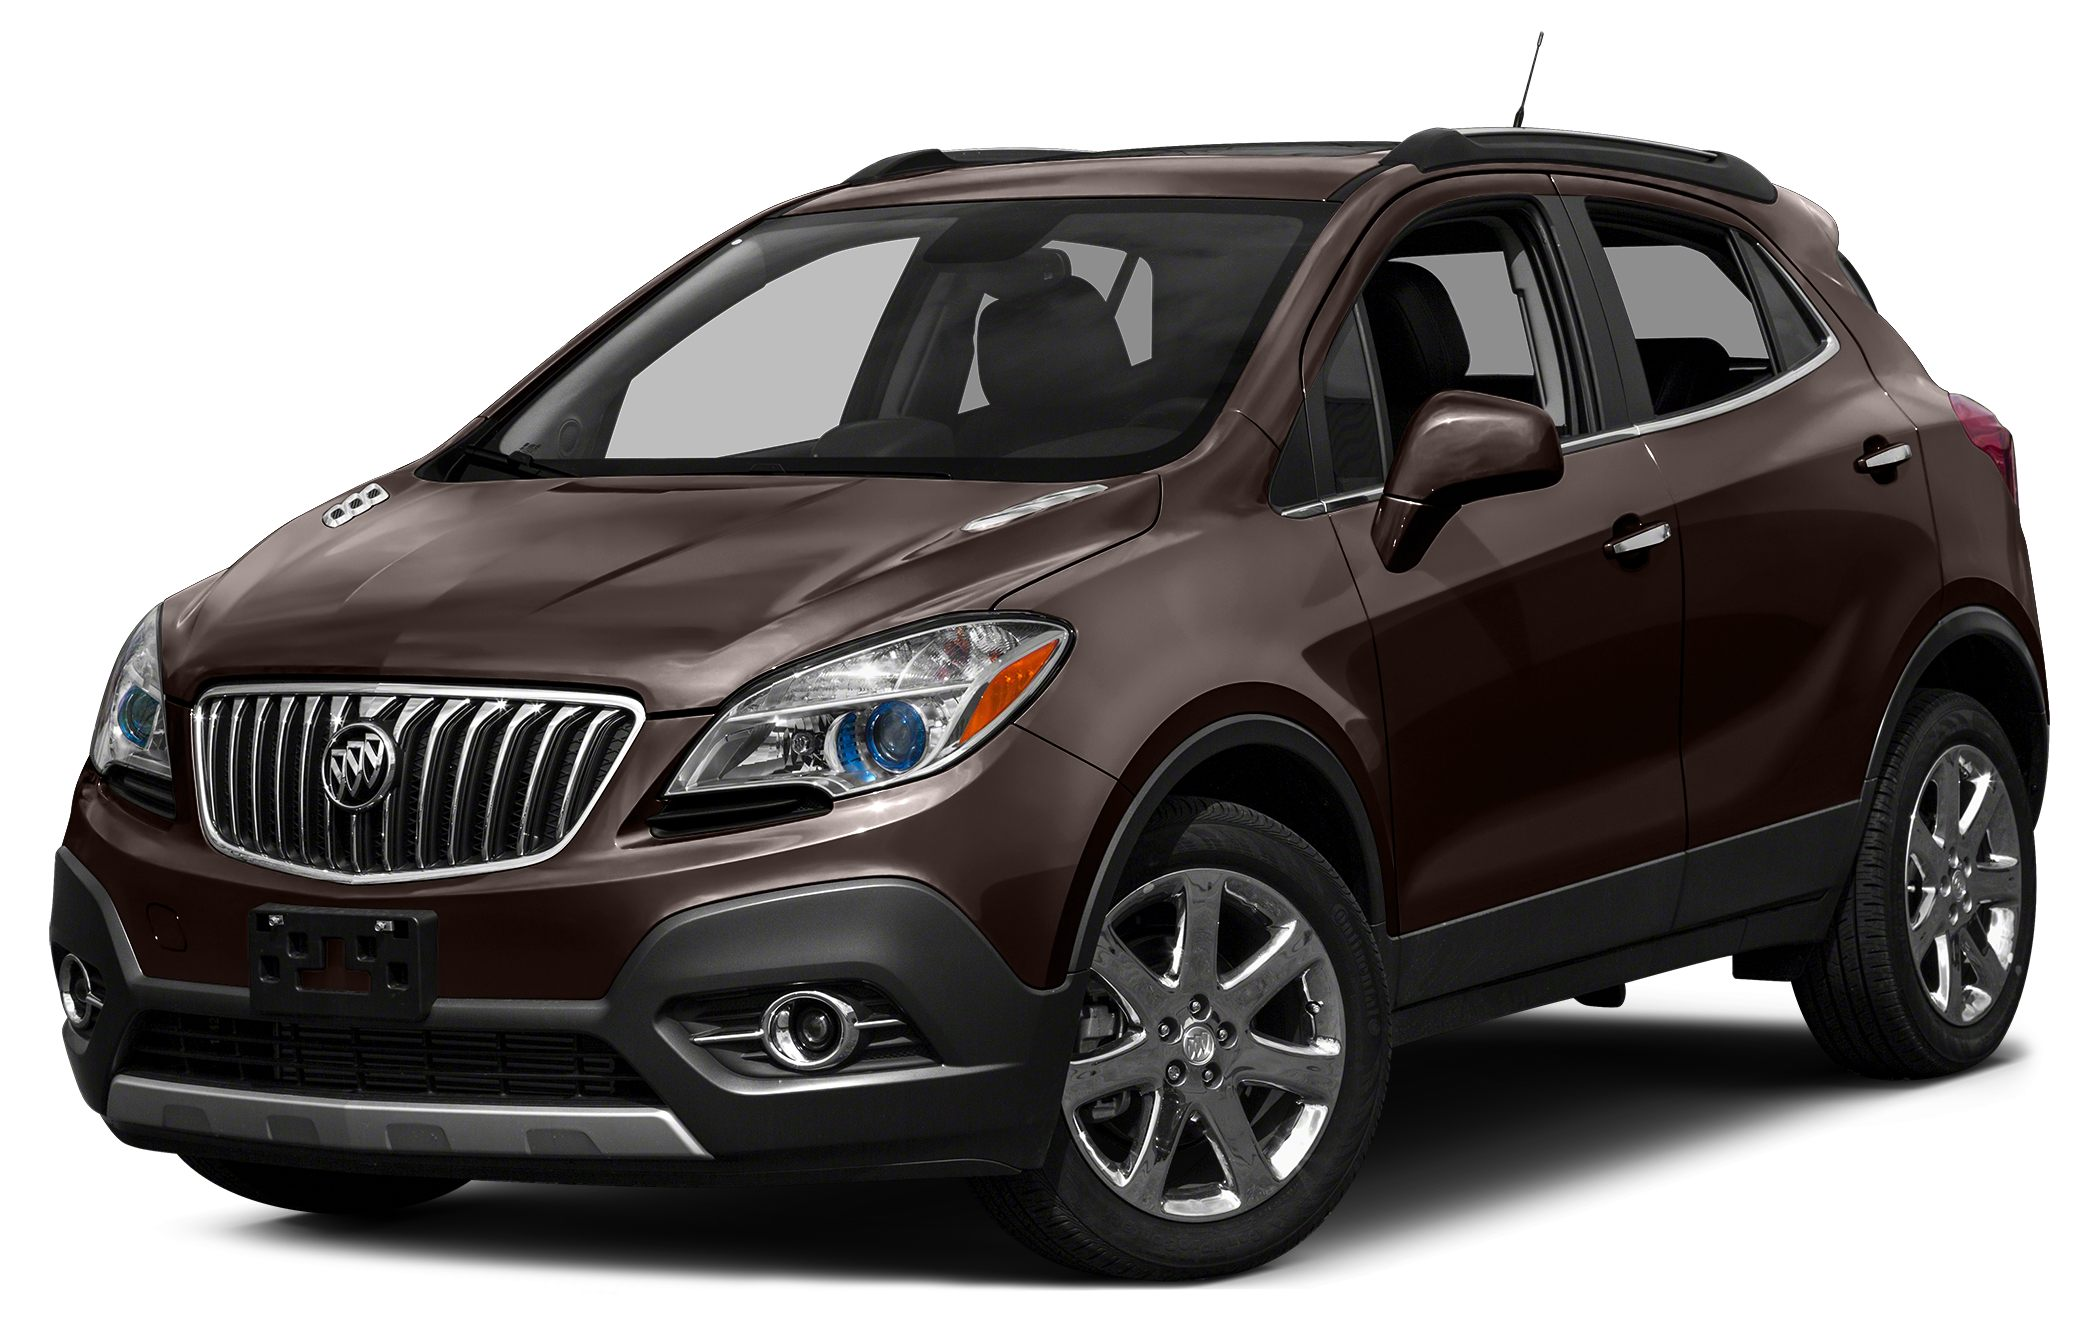 2014 Buick Encore Convenience ECOTEC 14L I4 SMPI DOHC Turbocharged VVT and FWD At David Stanley